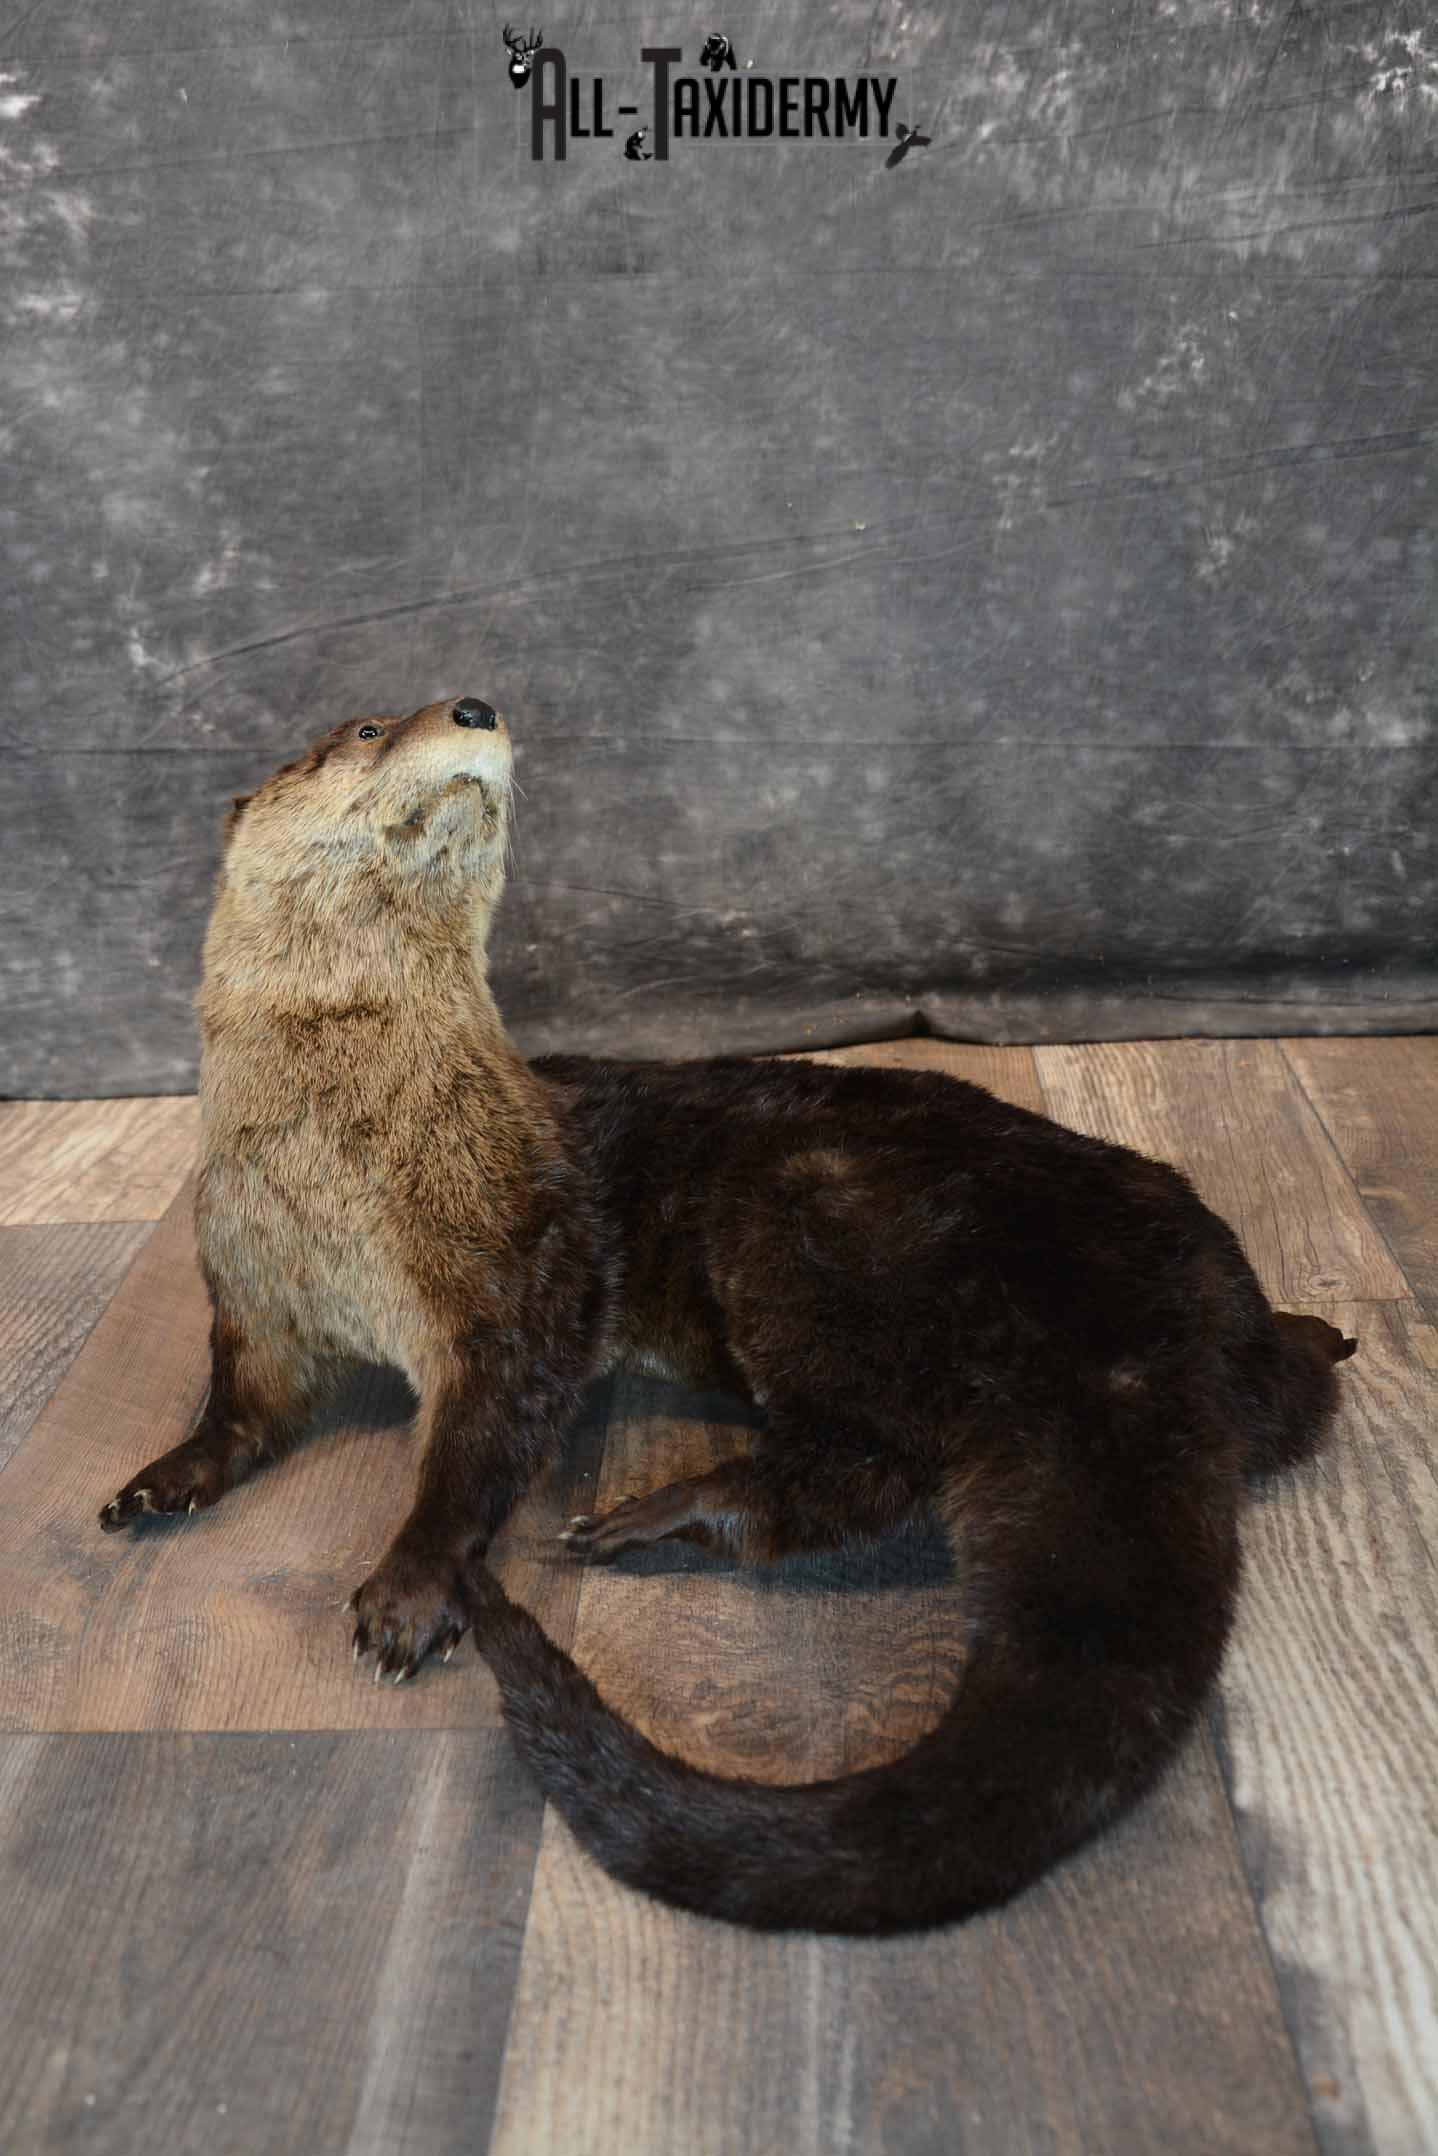 Otter Taxidermy Mount for Sale SKU 1298